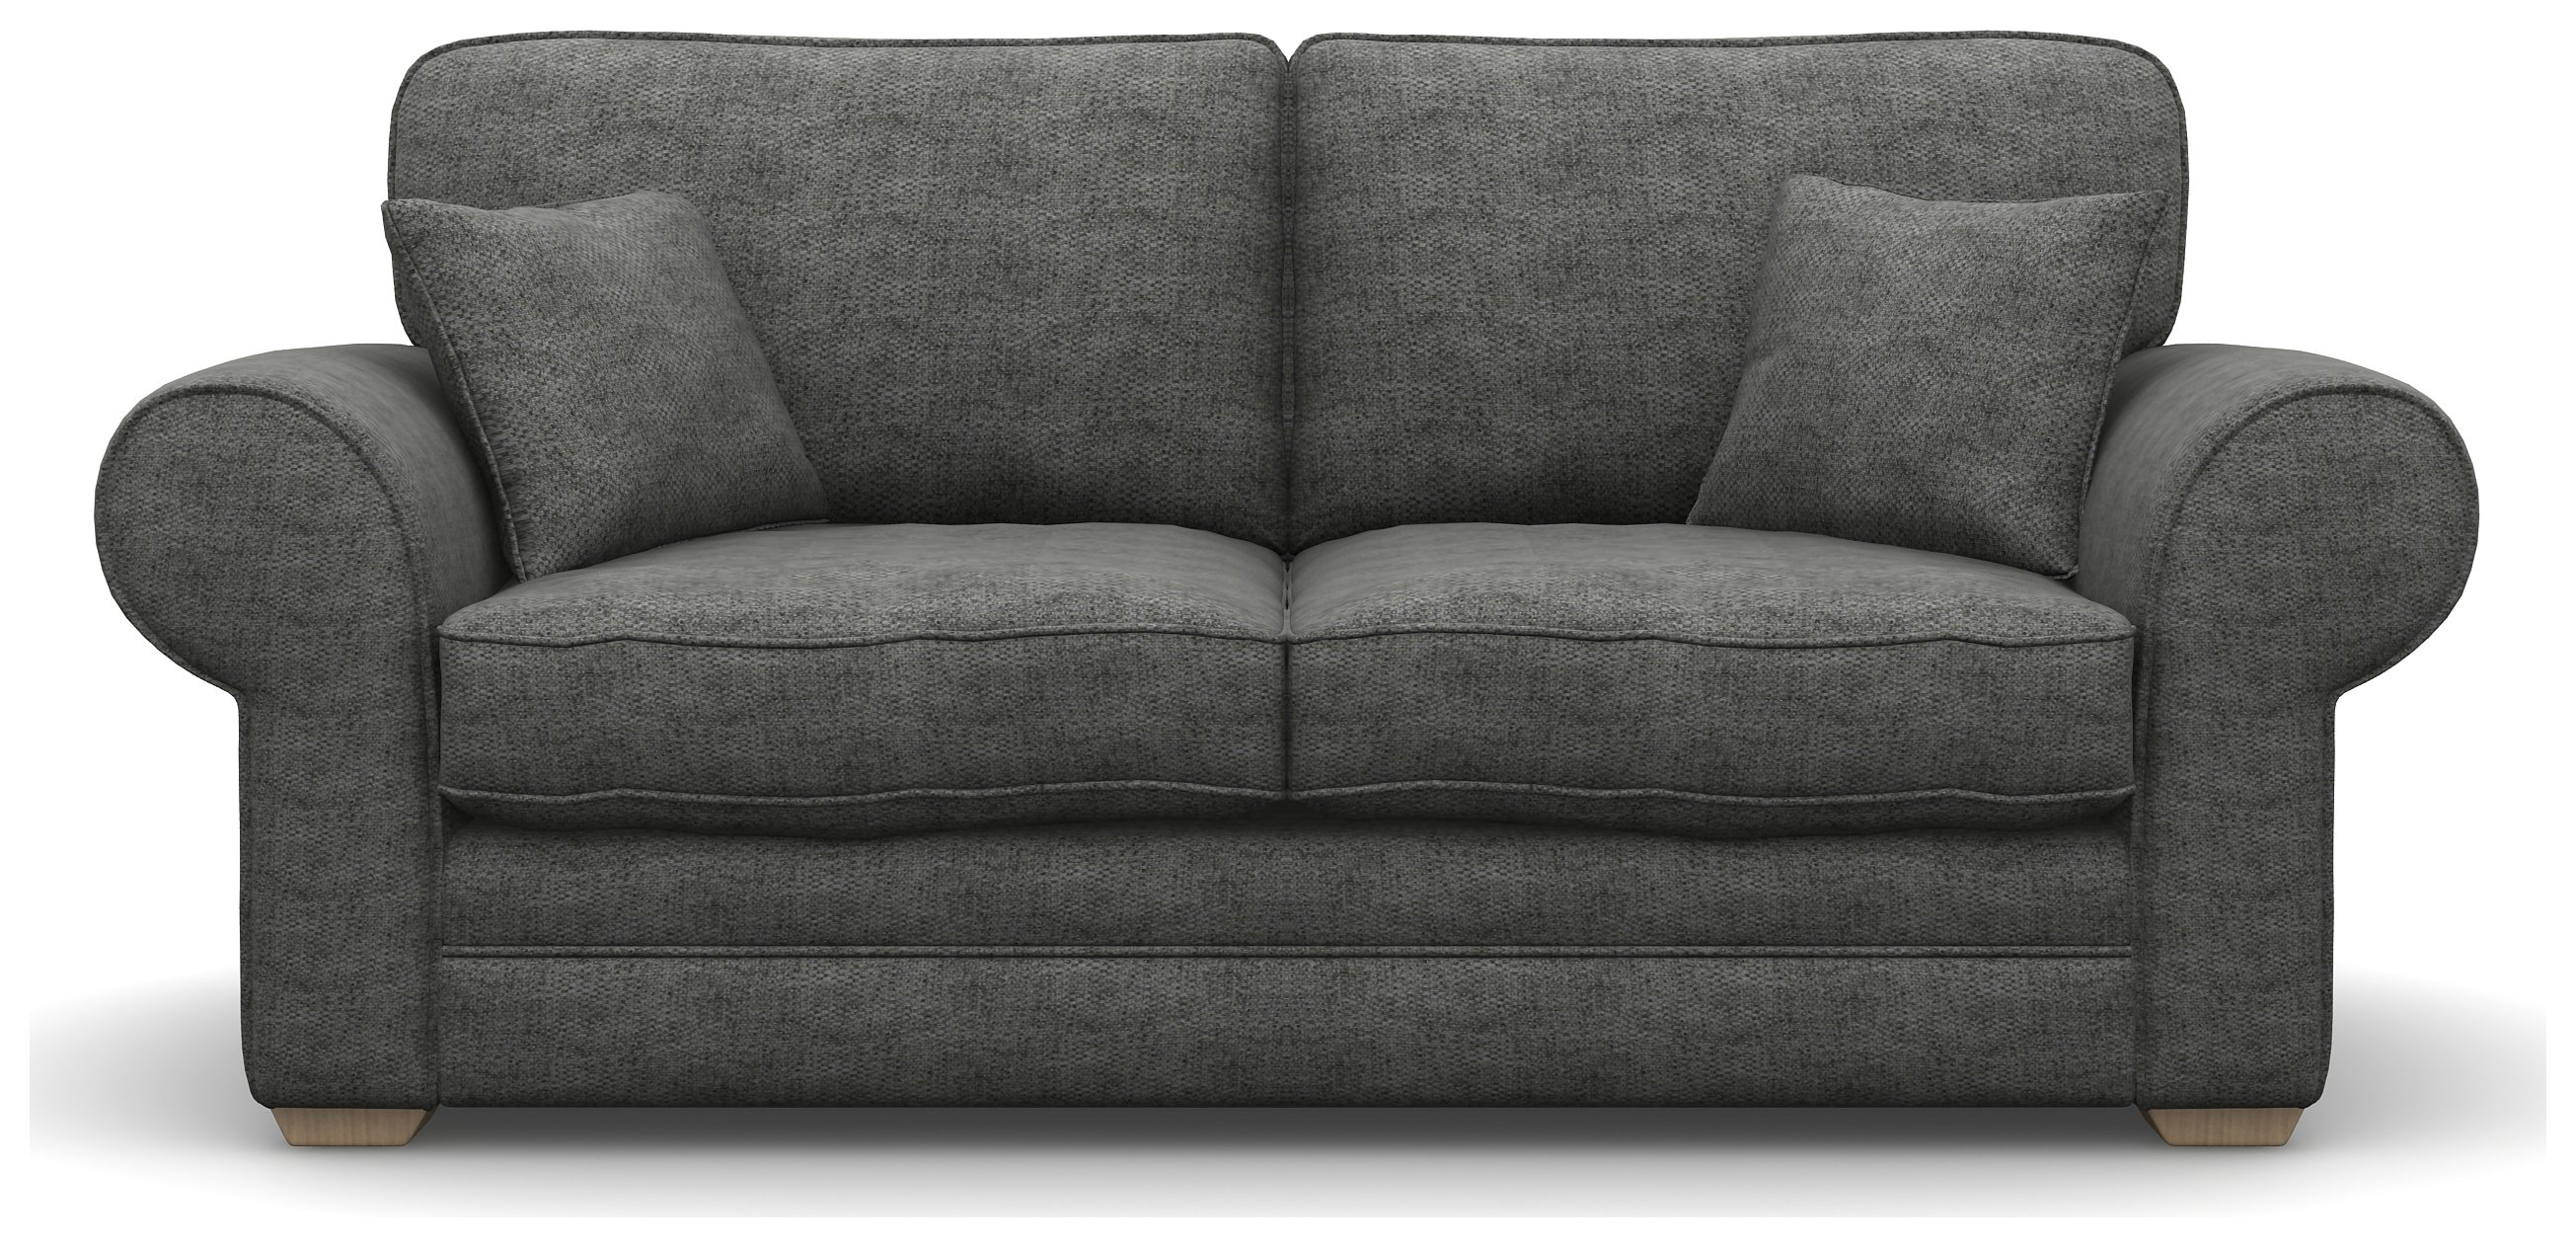 Heart of House Chedworth 2 Seater Grey Fabric Sofa Bed